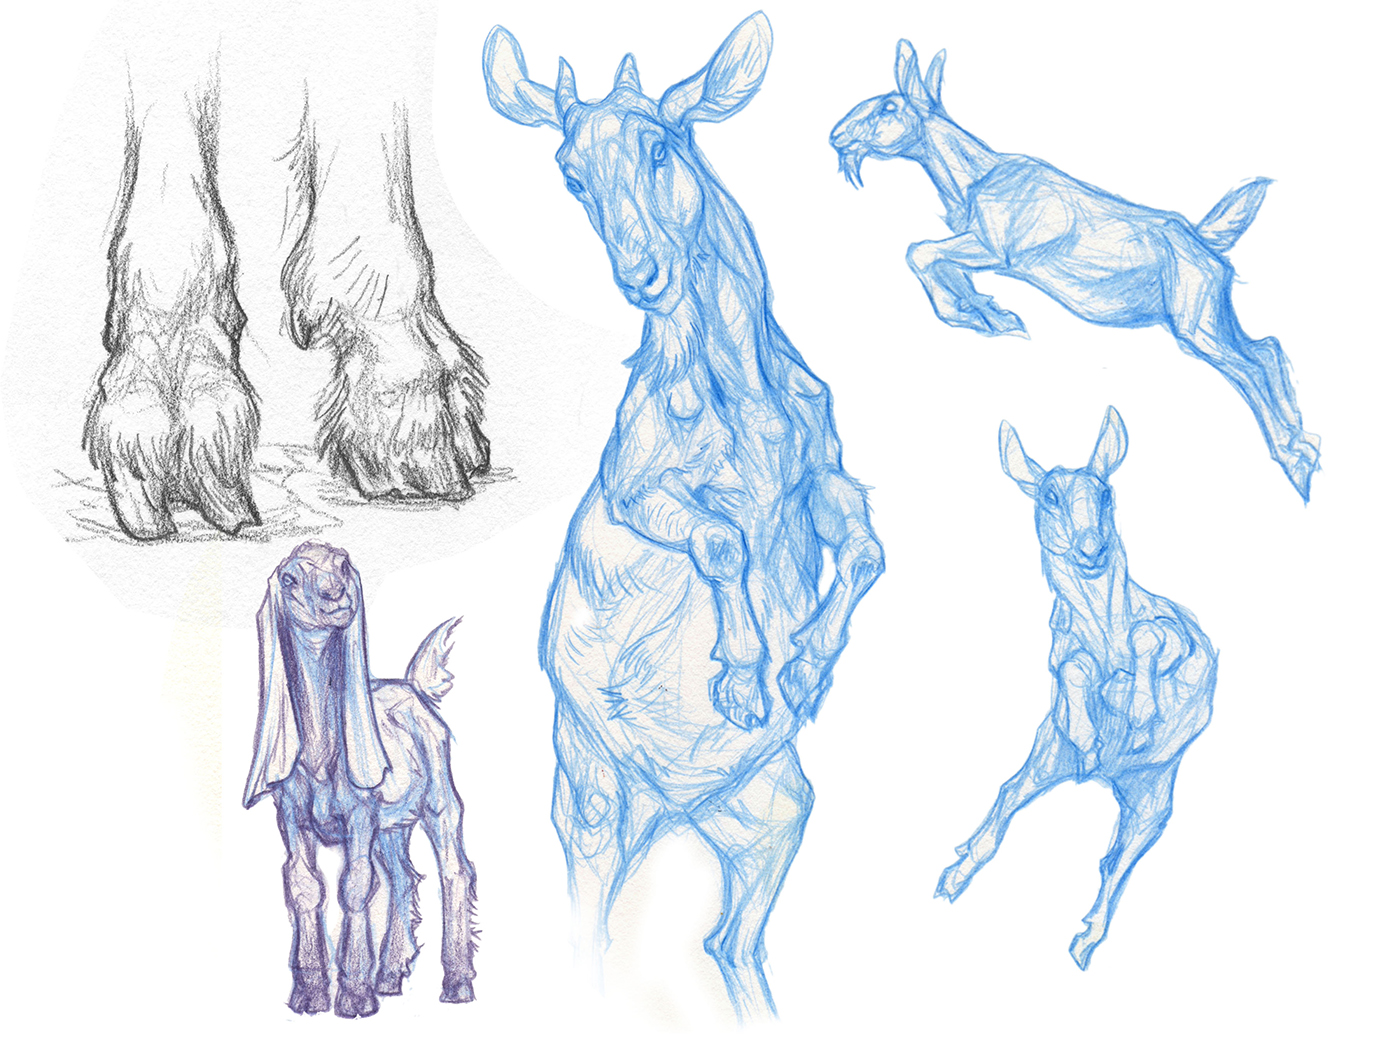 1400x1050 3 Techniques To Apply To Your Creature Designs, With Brynn